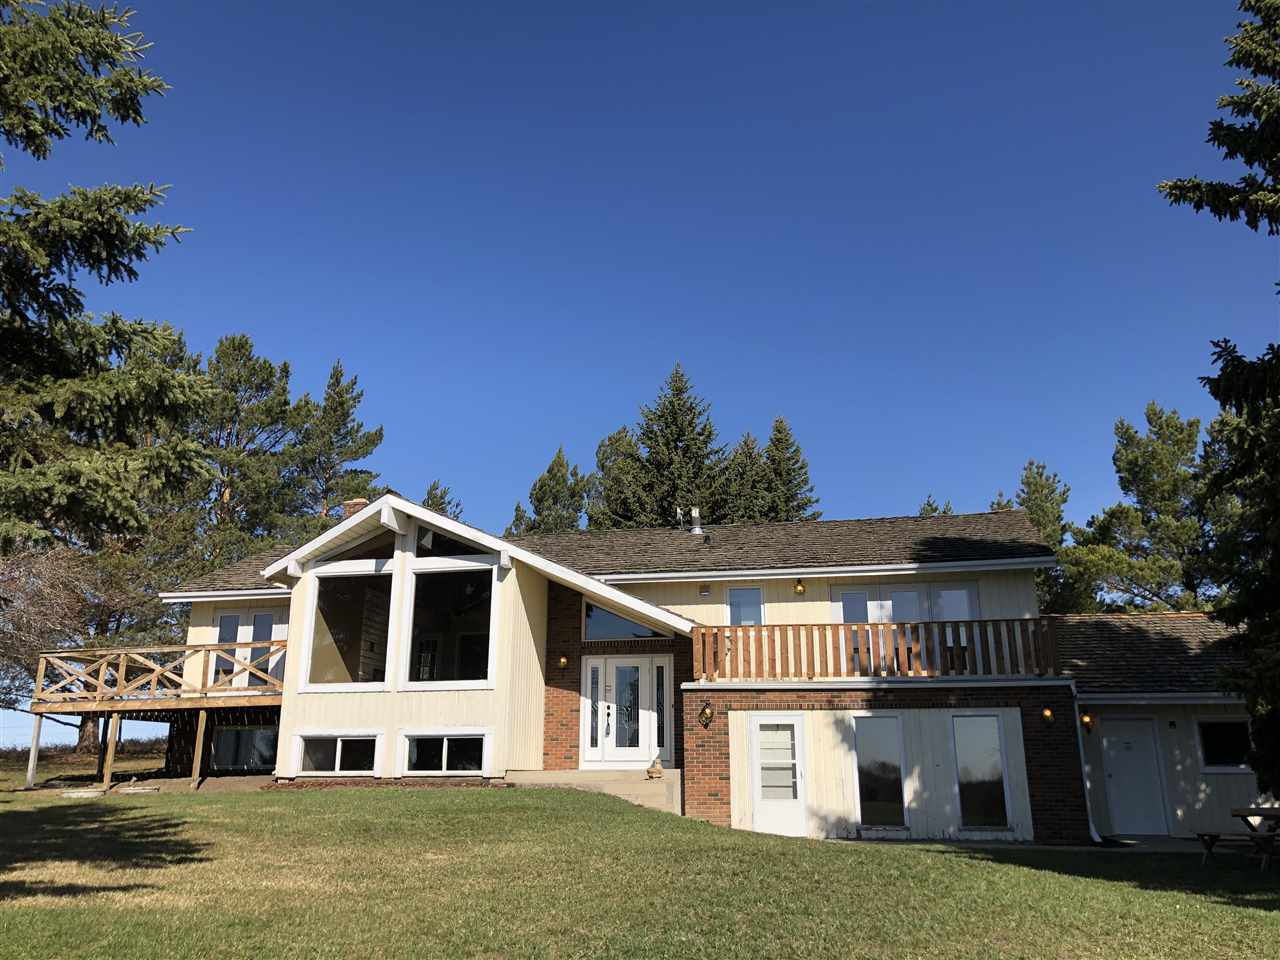 Main Photo: 2 240018 TWP RD 472: Rural Wetaskiwin County House for sale : MLS®# E4154184